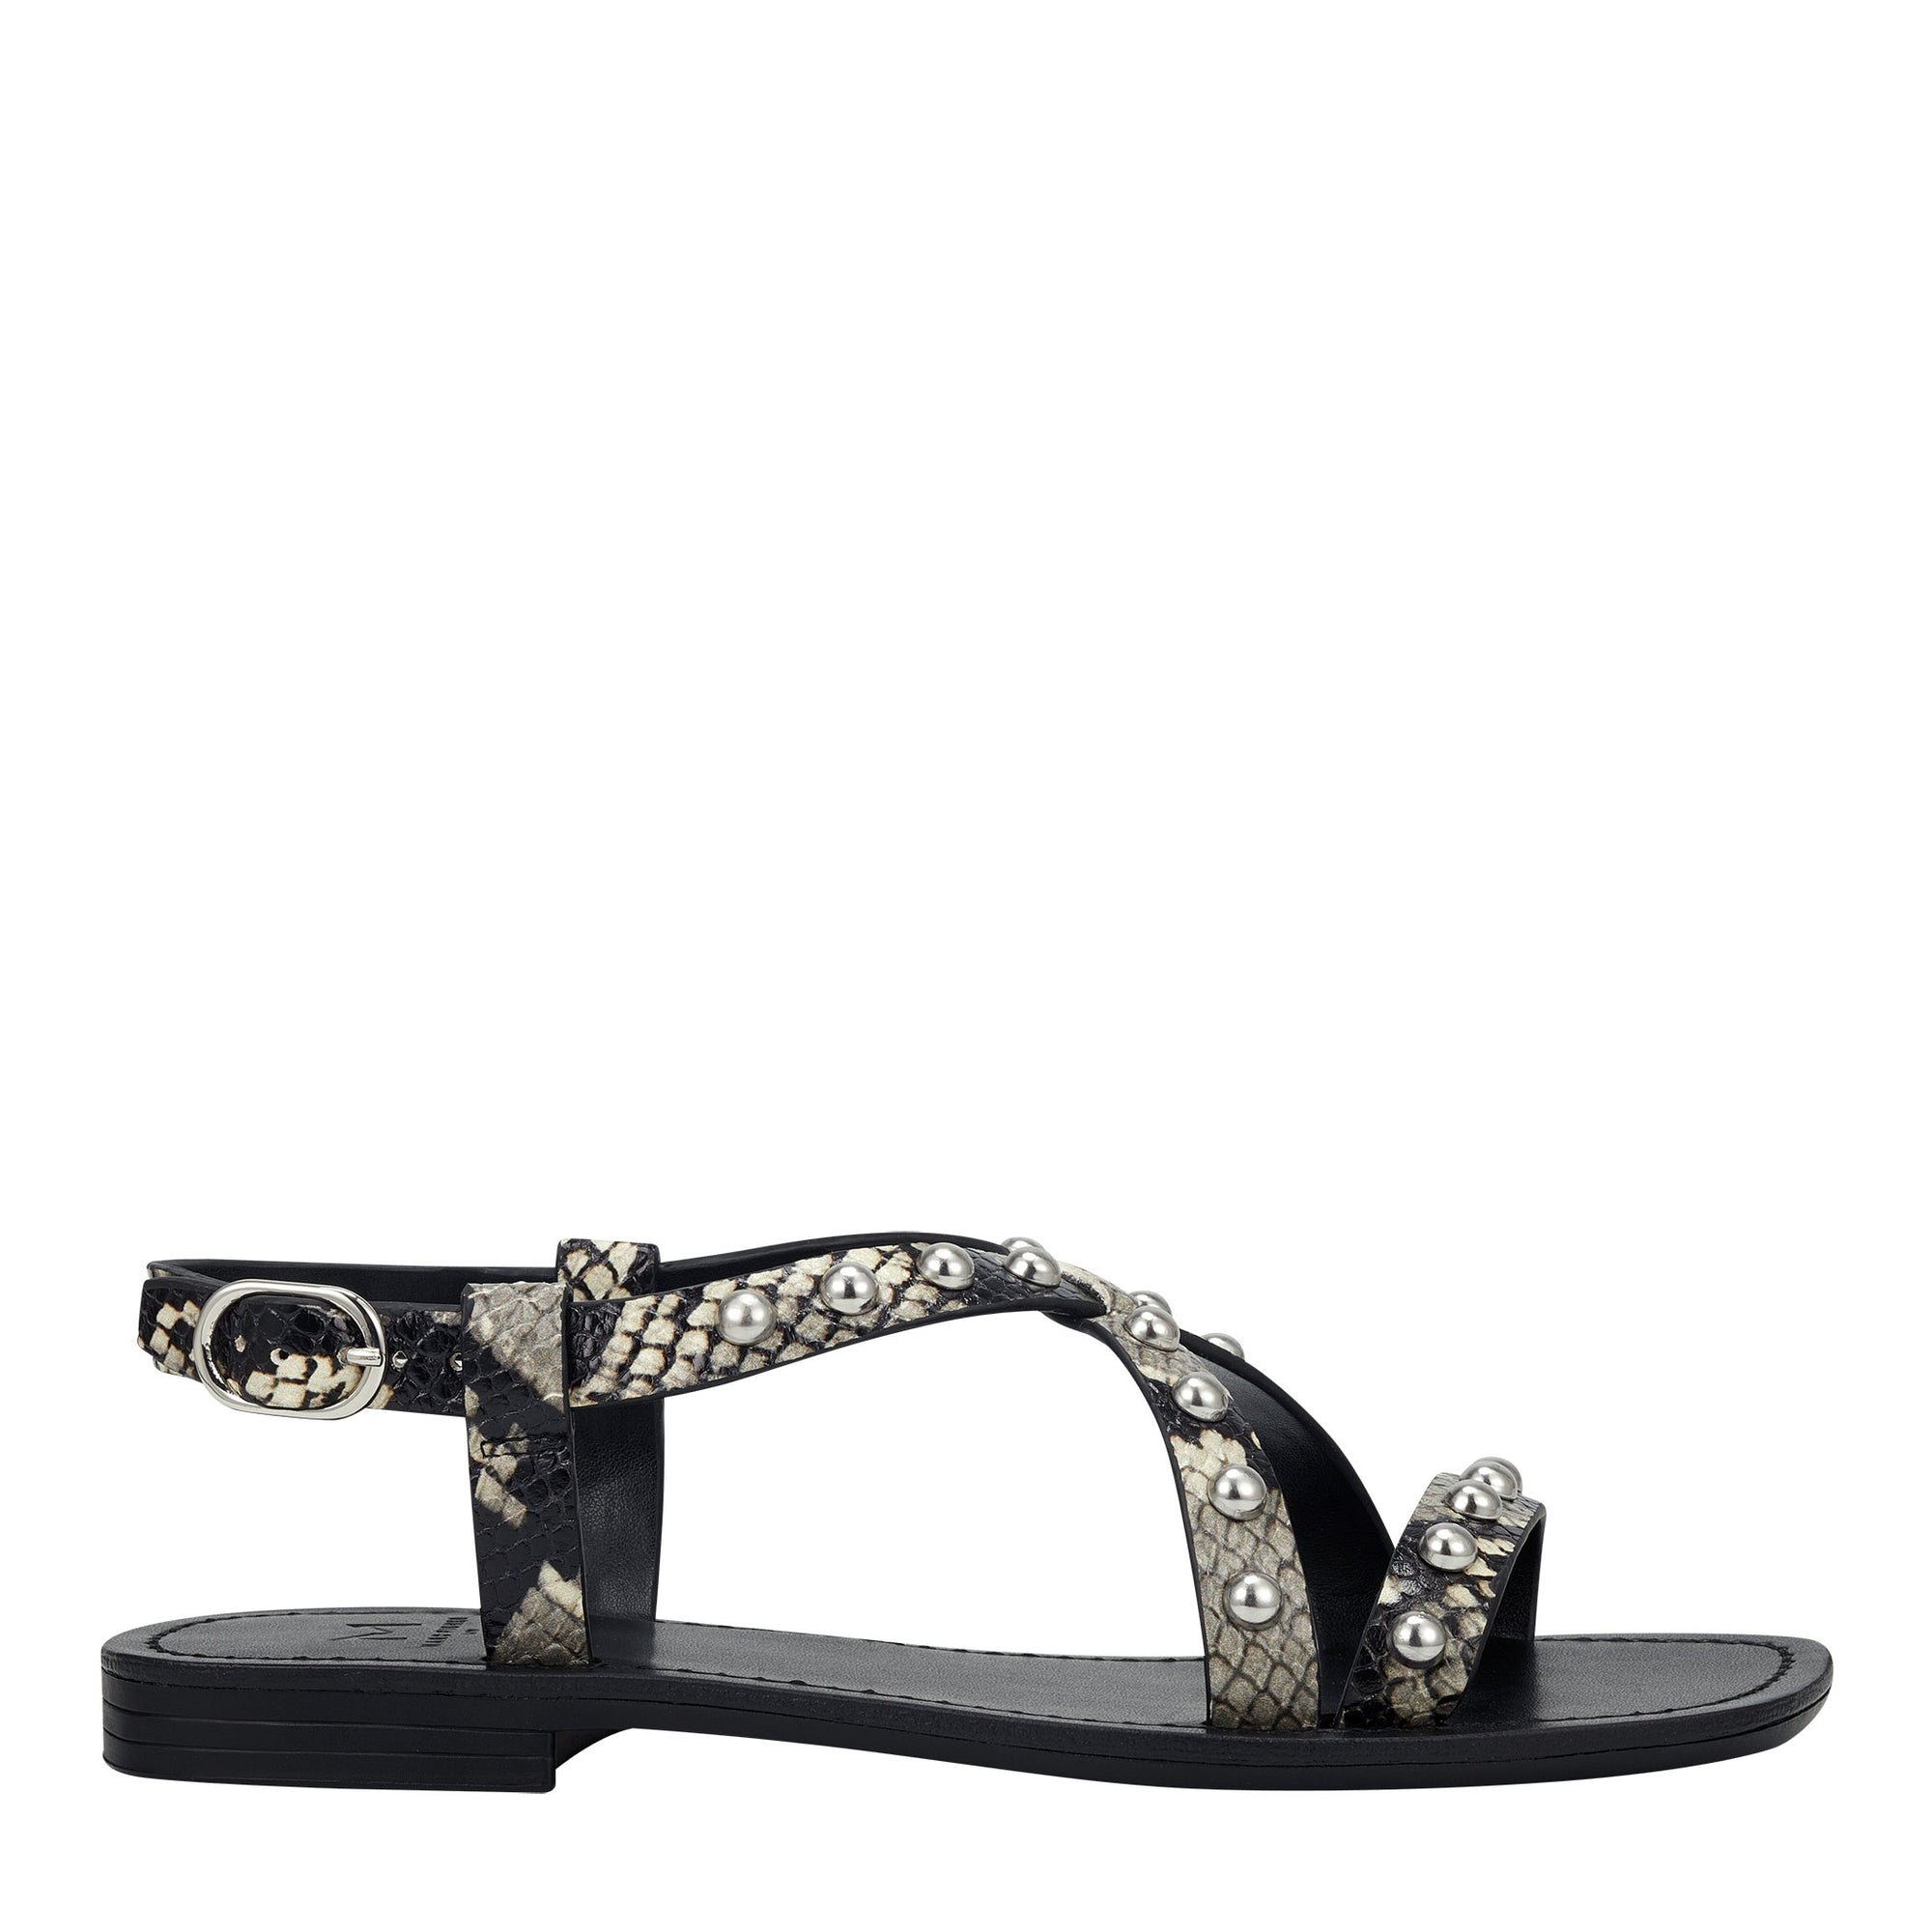 fianna-studded-flat-sandal-in-snake-printed-leather